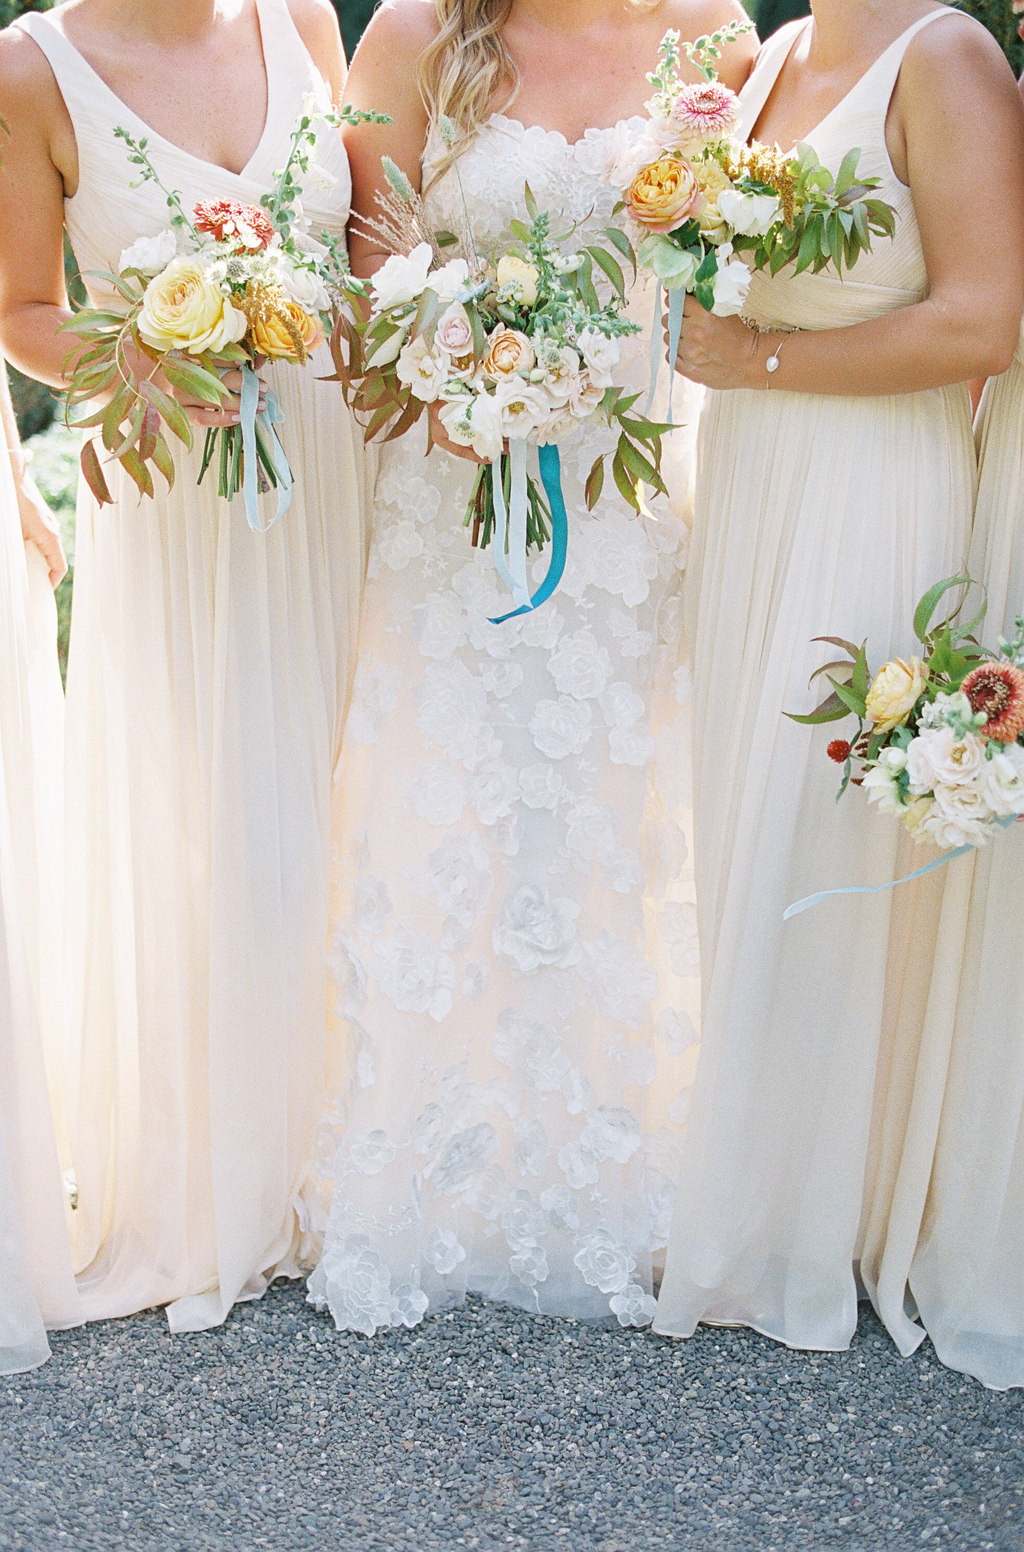 detail of bridesmaids dresses and bouquets at a napa wedding at the venue beaulieu gardens